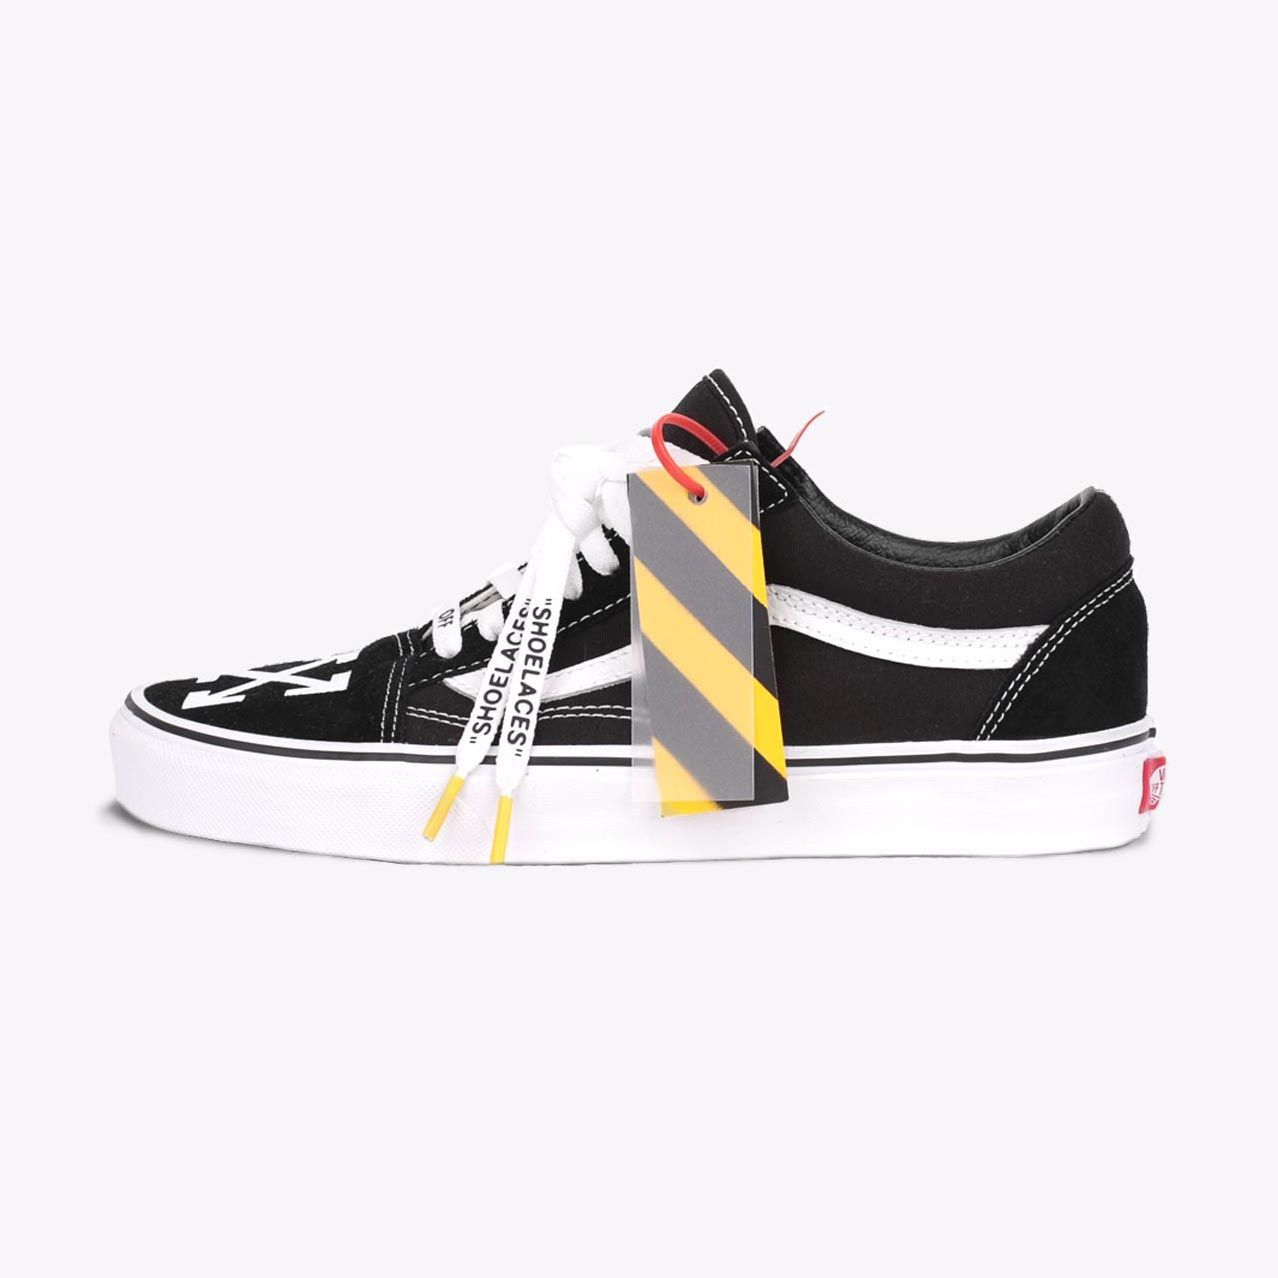 54c0c86f26 This iconic Vans Old Skool low-top sneaker features a hand-painted ...